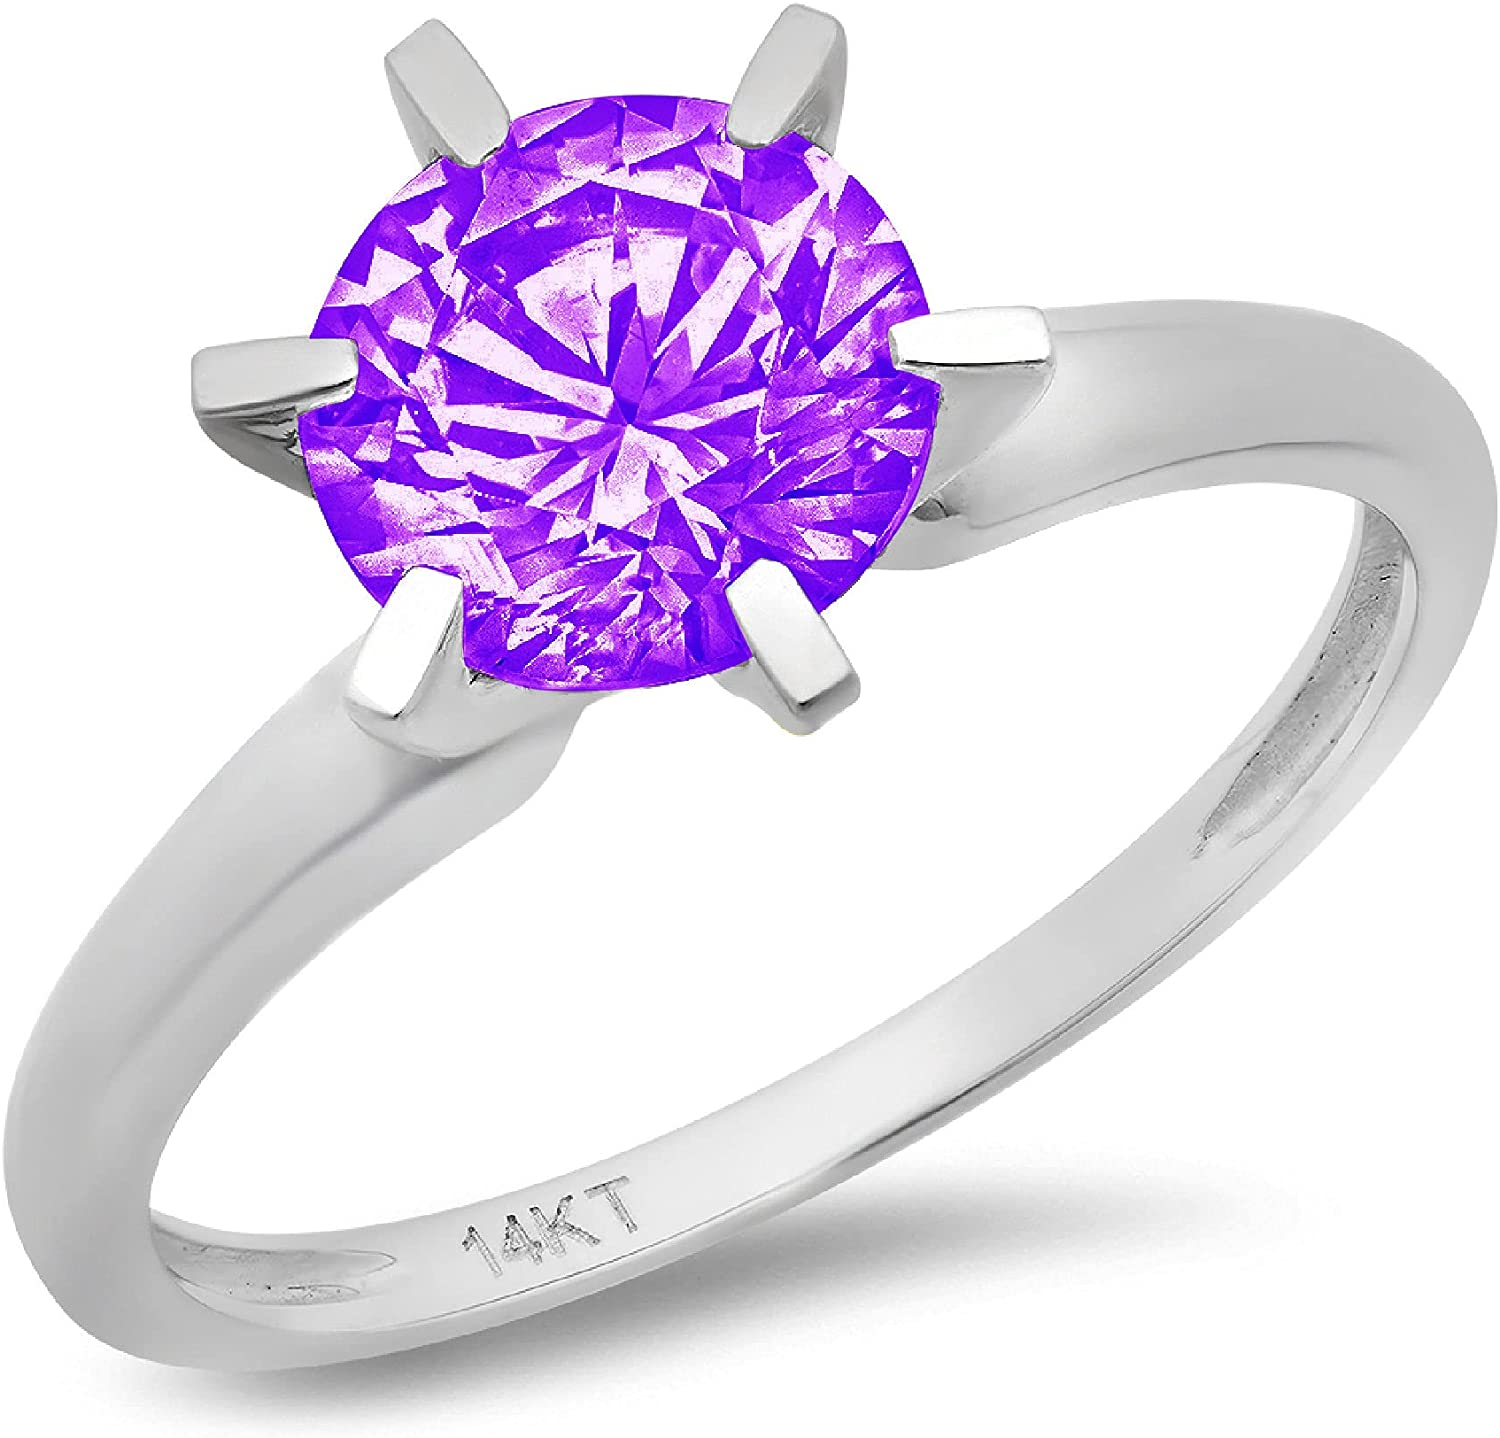 1.50 ct Round Cut Solitaire Natural Purple Amethyst Gem Stone Ideal VVS1 4-Prong Engagement Wedding Bridal Promise Anniversary Ring Solid Real 14k white Gold for Women